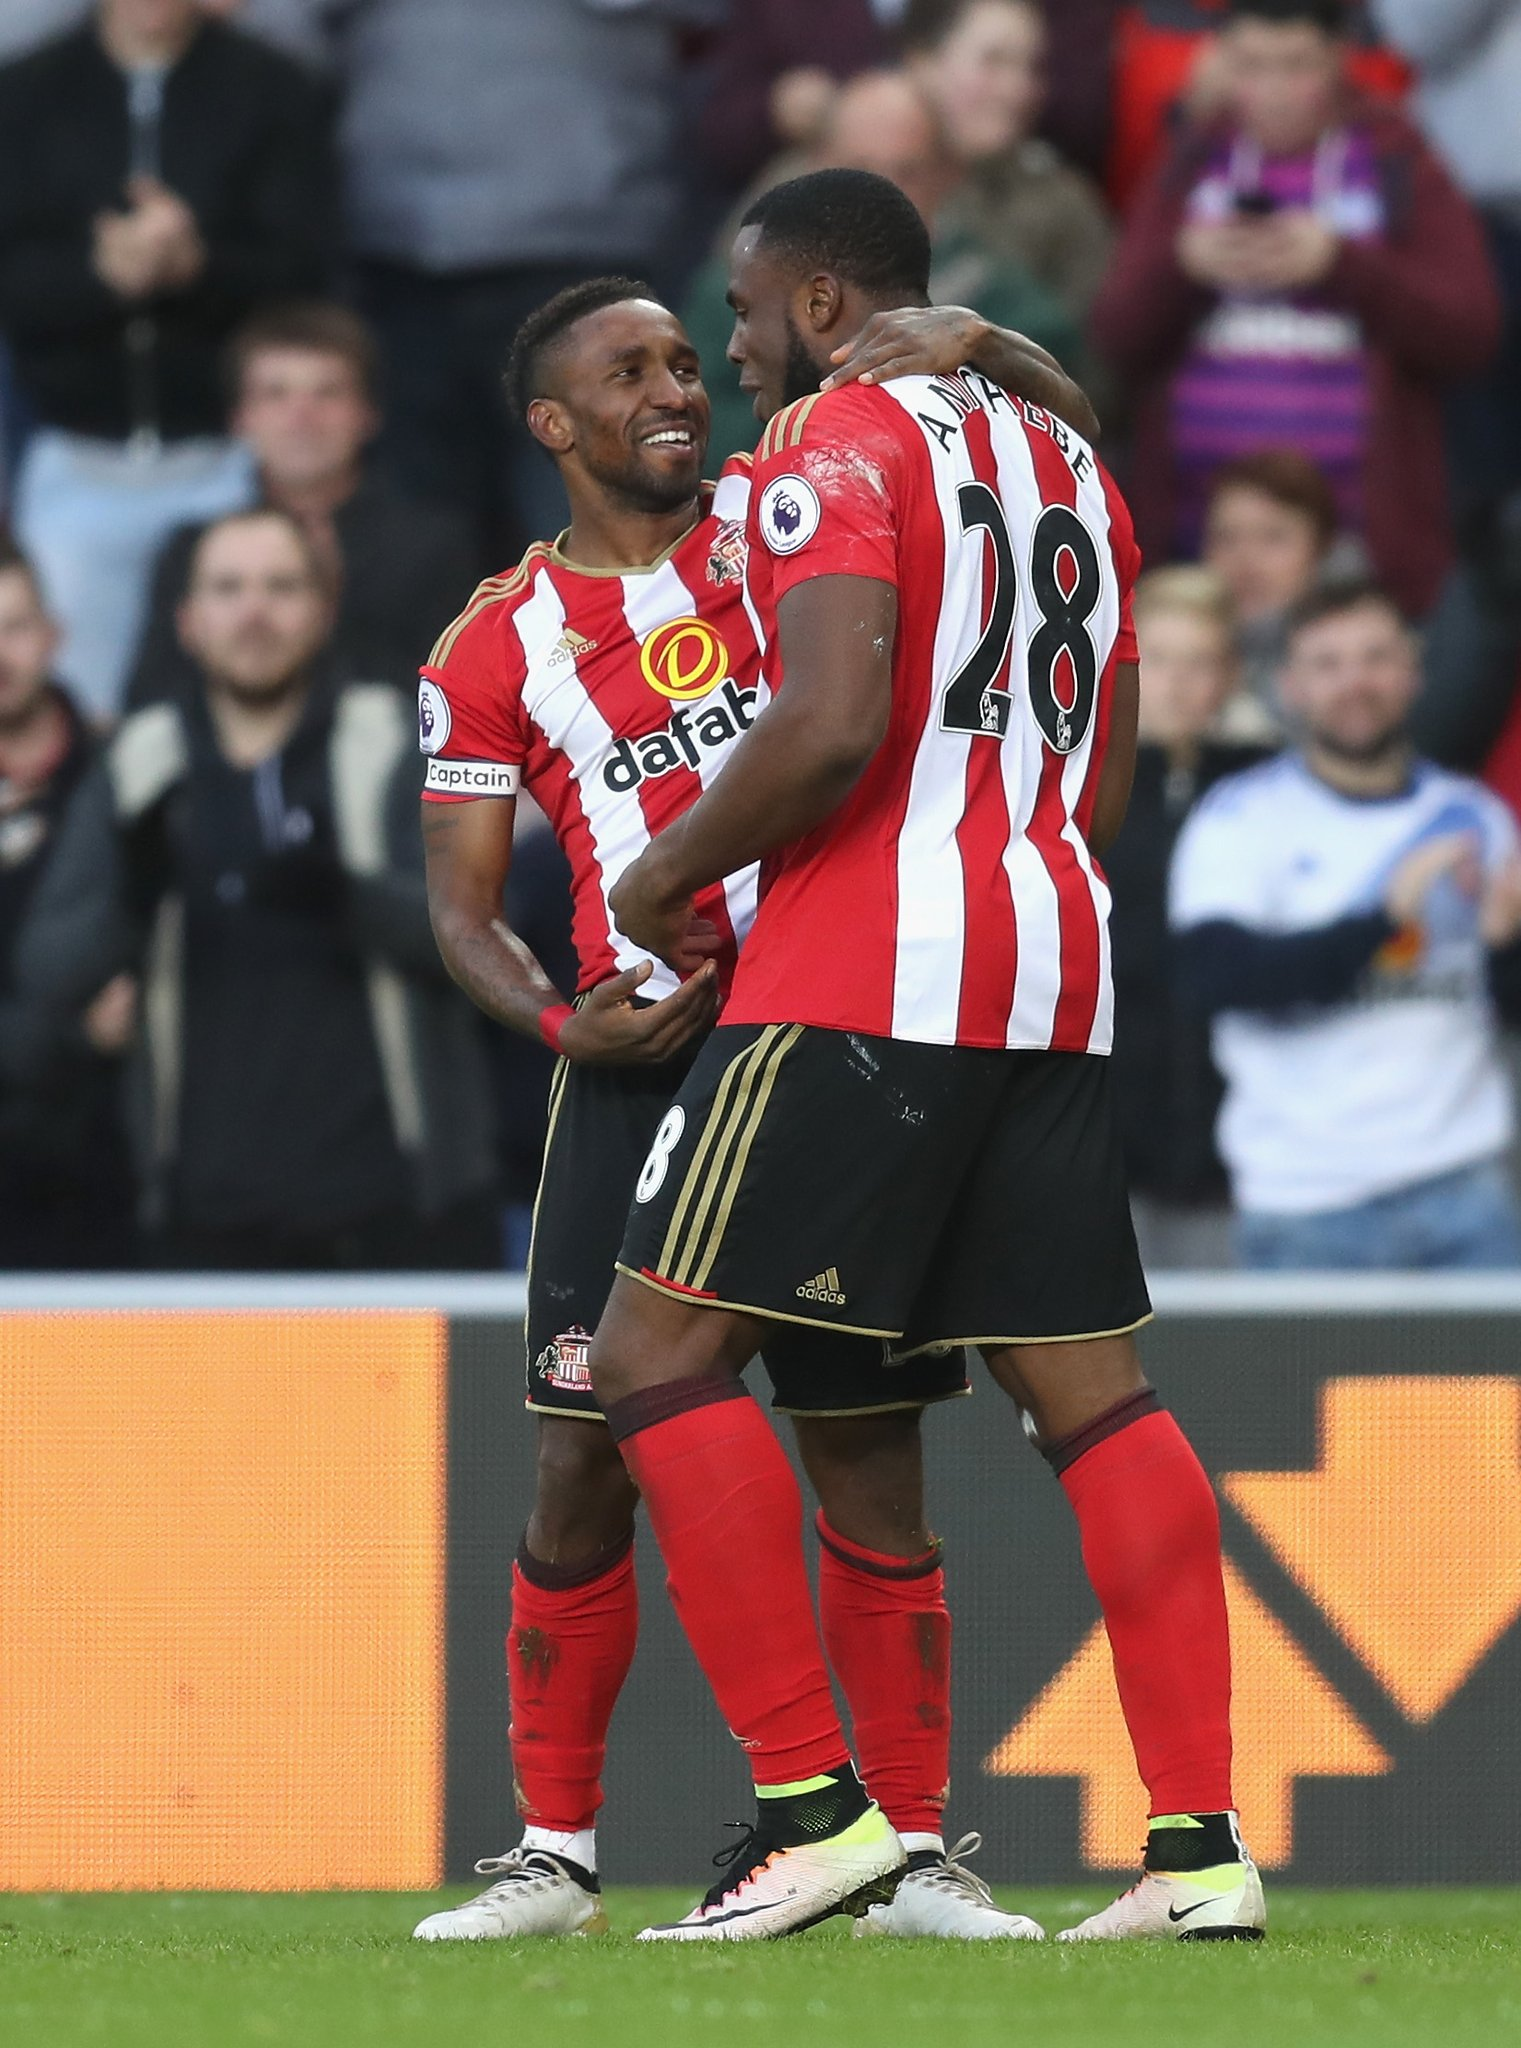 Moyes: Love From Sunderland Fans Helping Anichebe